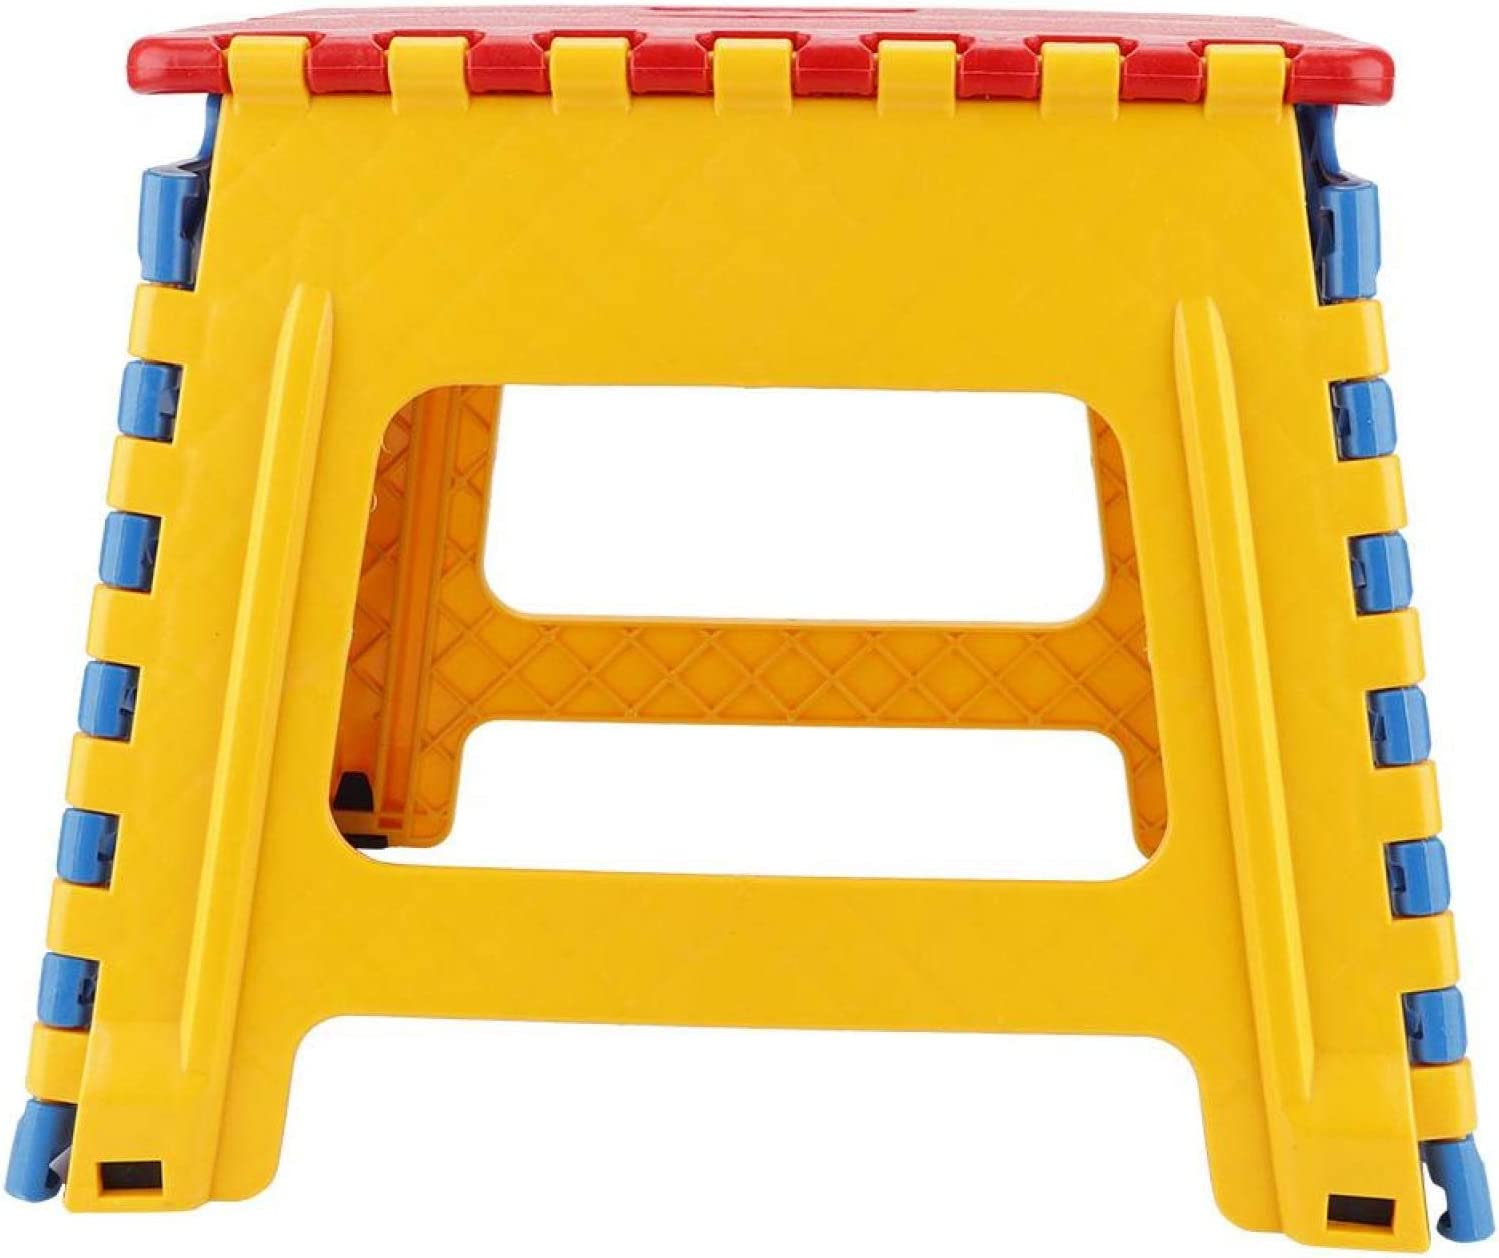 Max 50% OFF Sales of SALE items from new works Emoshayoga with Safety Buckle Folding for Stool Liv Step